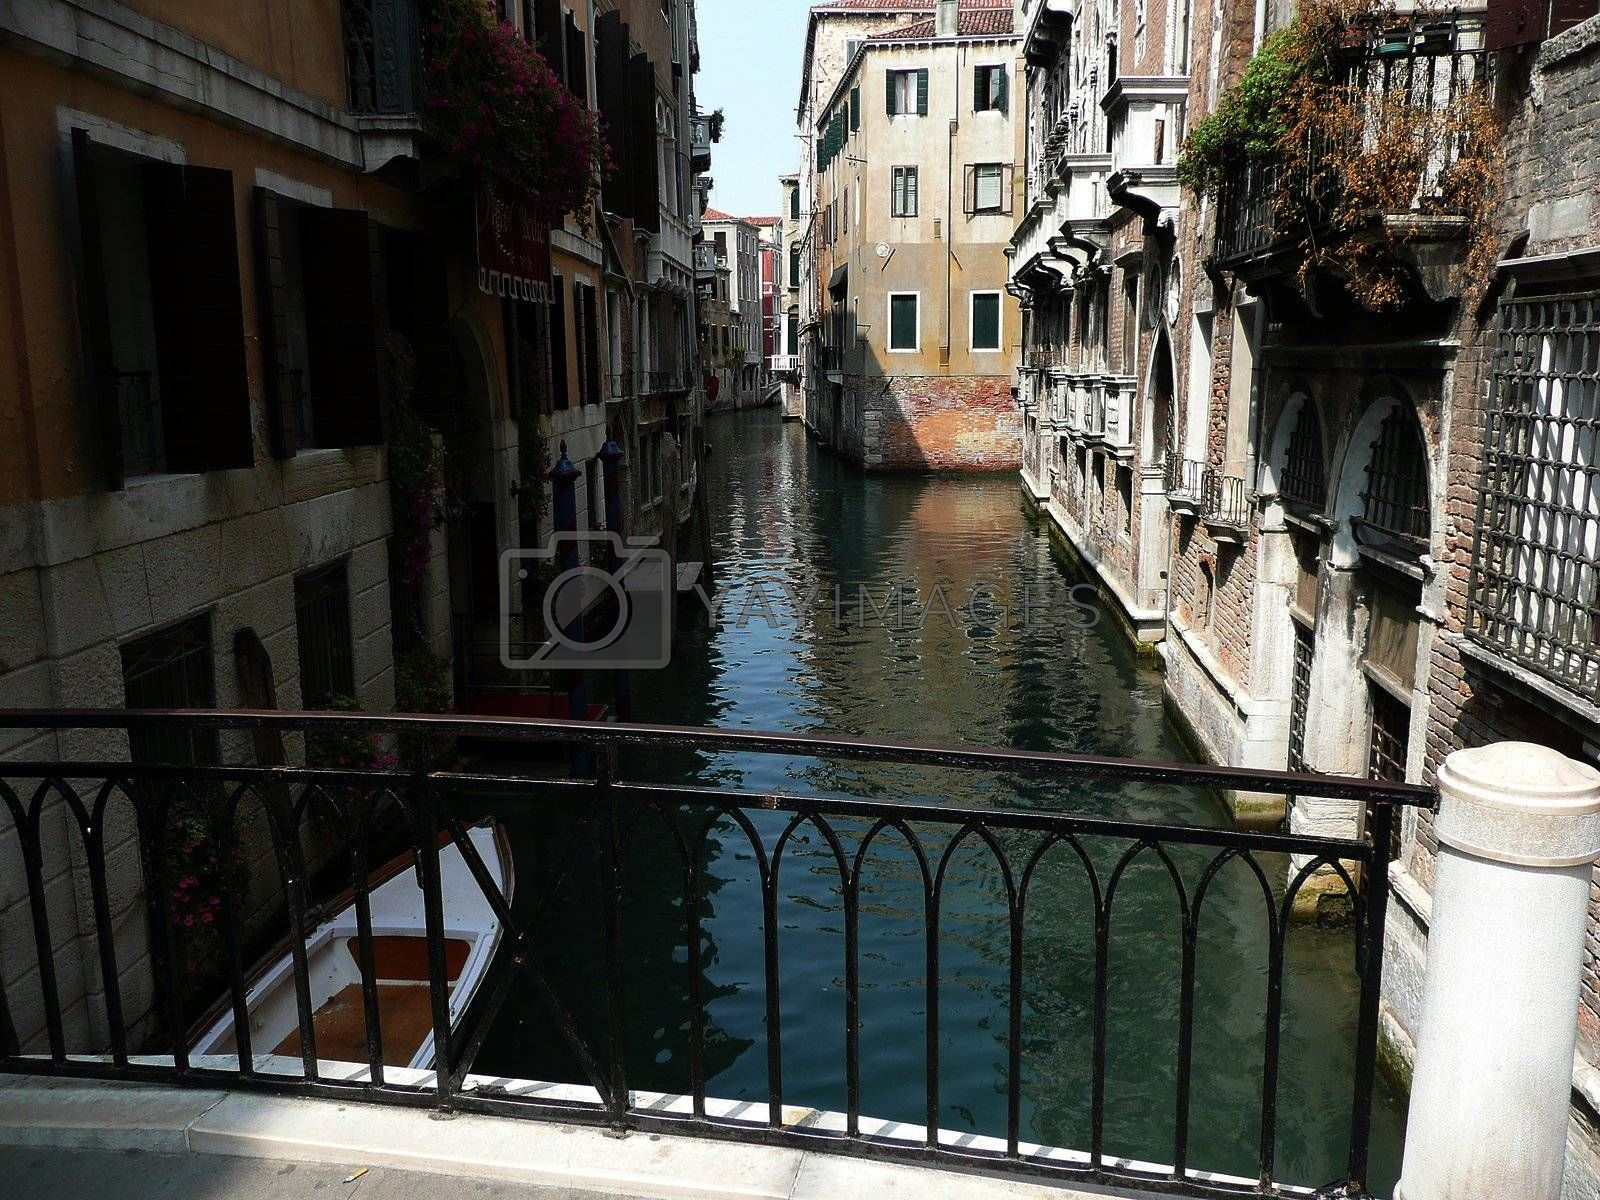 Deserted Canal, Venice, Italy by Marco Rubino